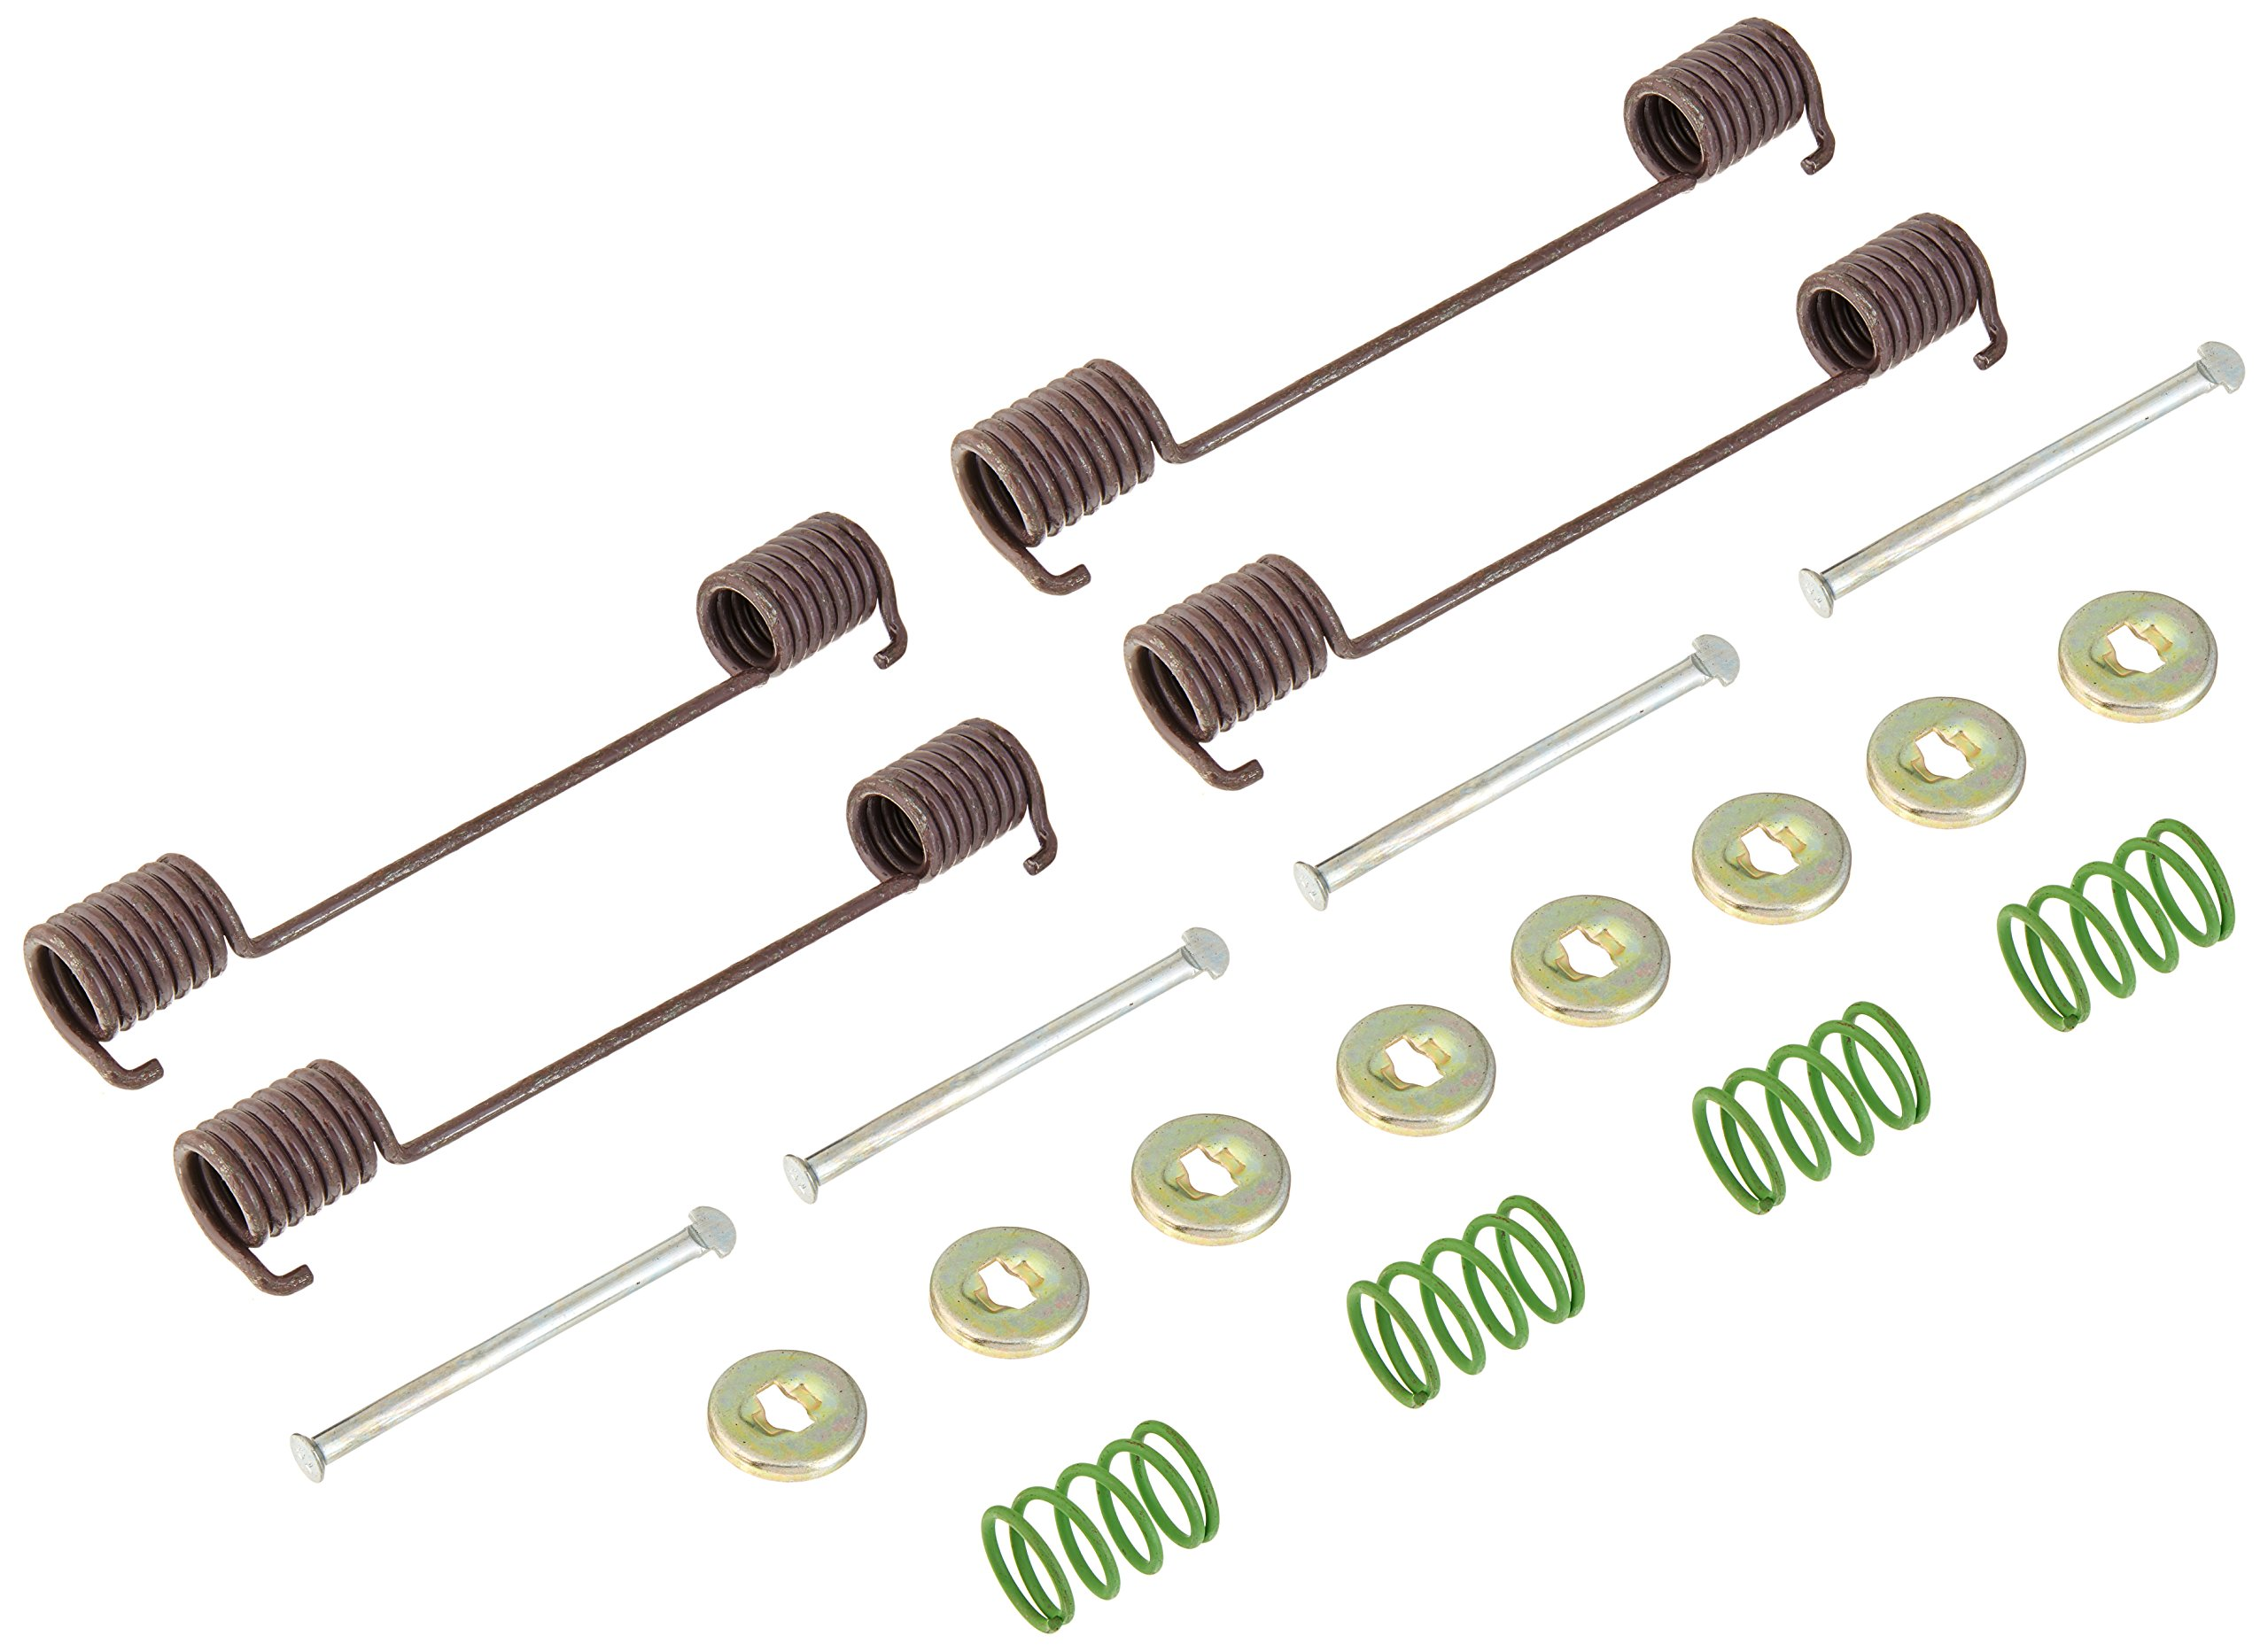 Carlson Quality Brake Parts H9258 Drum Brake Hardware Kit by Carlson